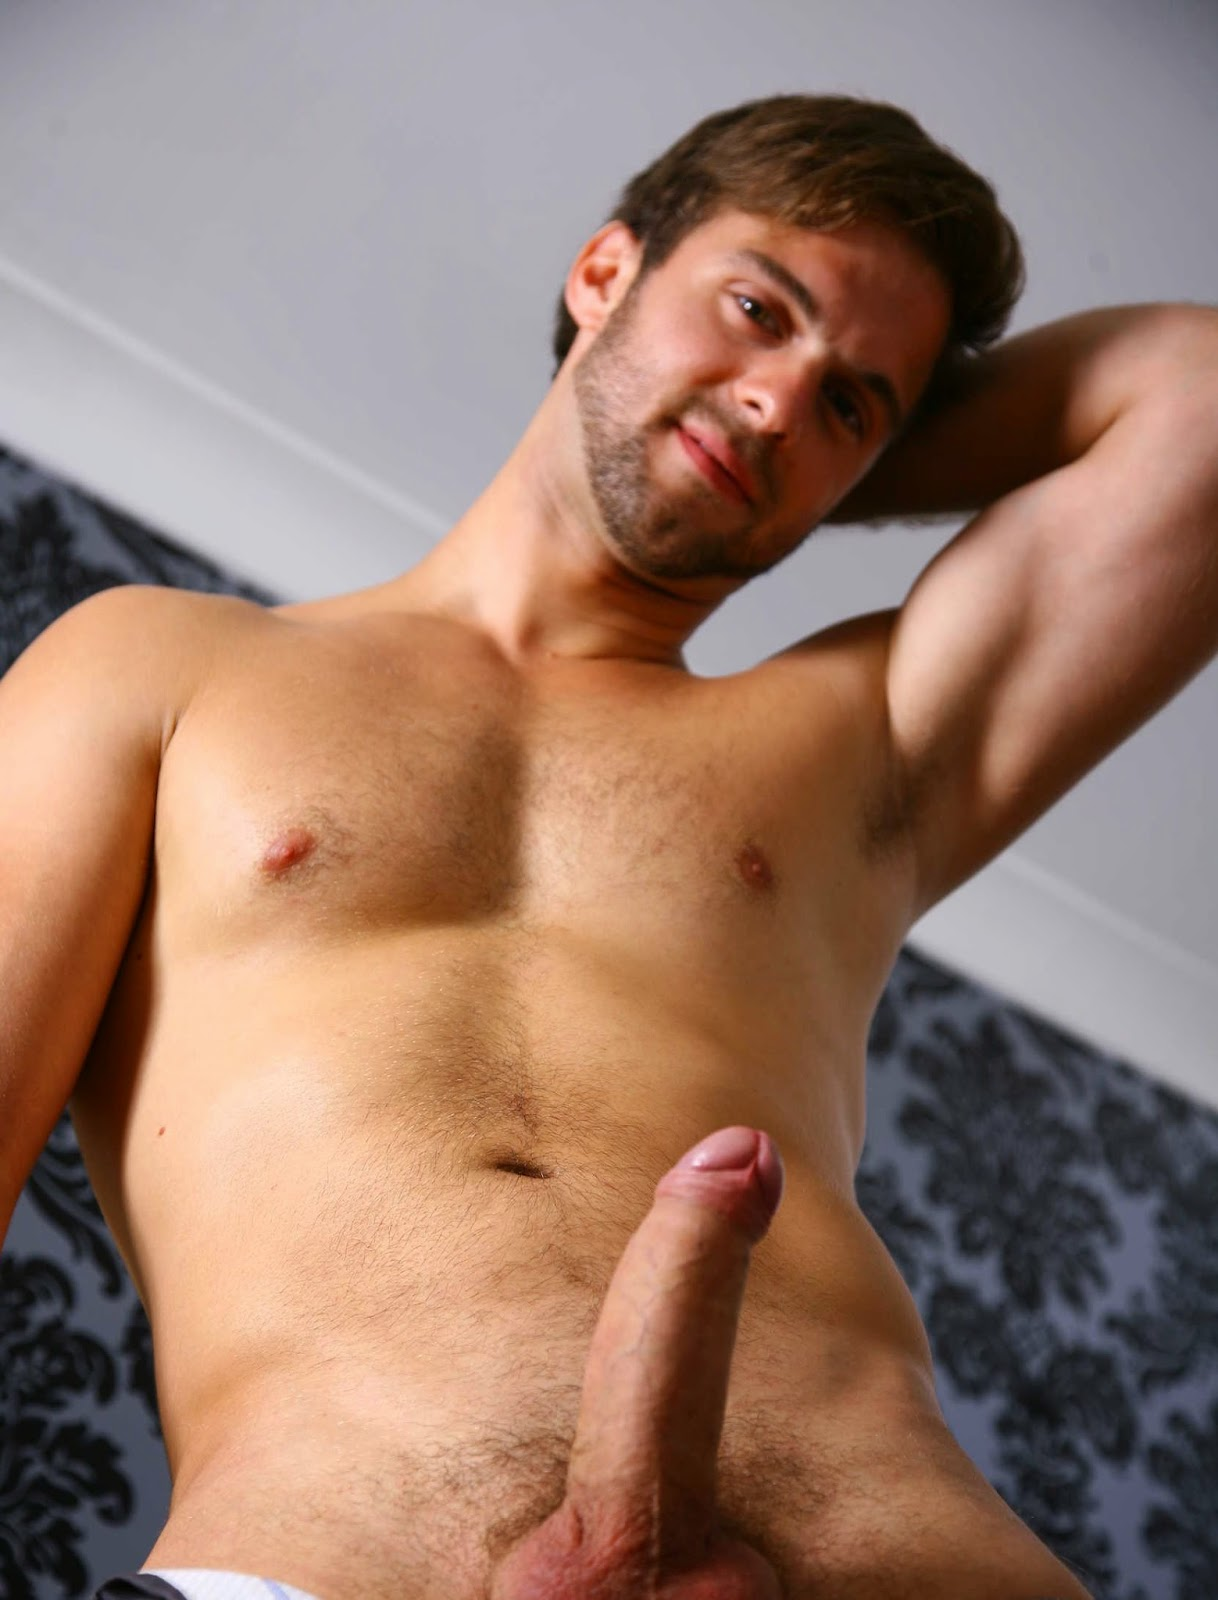 mexico gay escorts videos de xxx